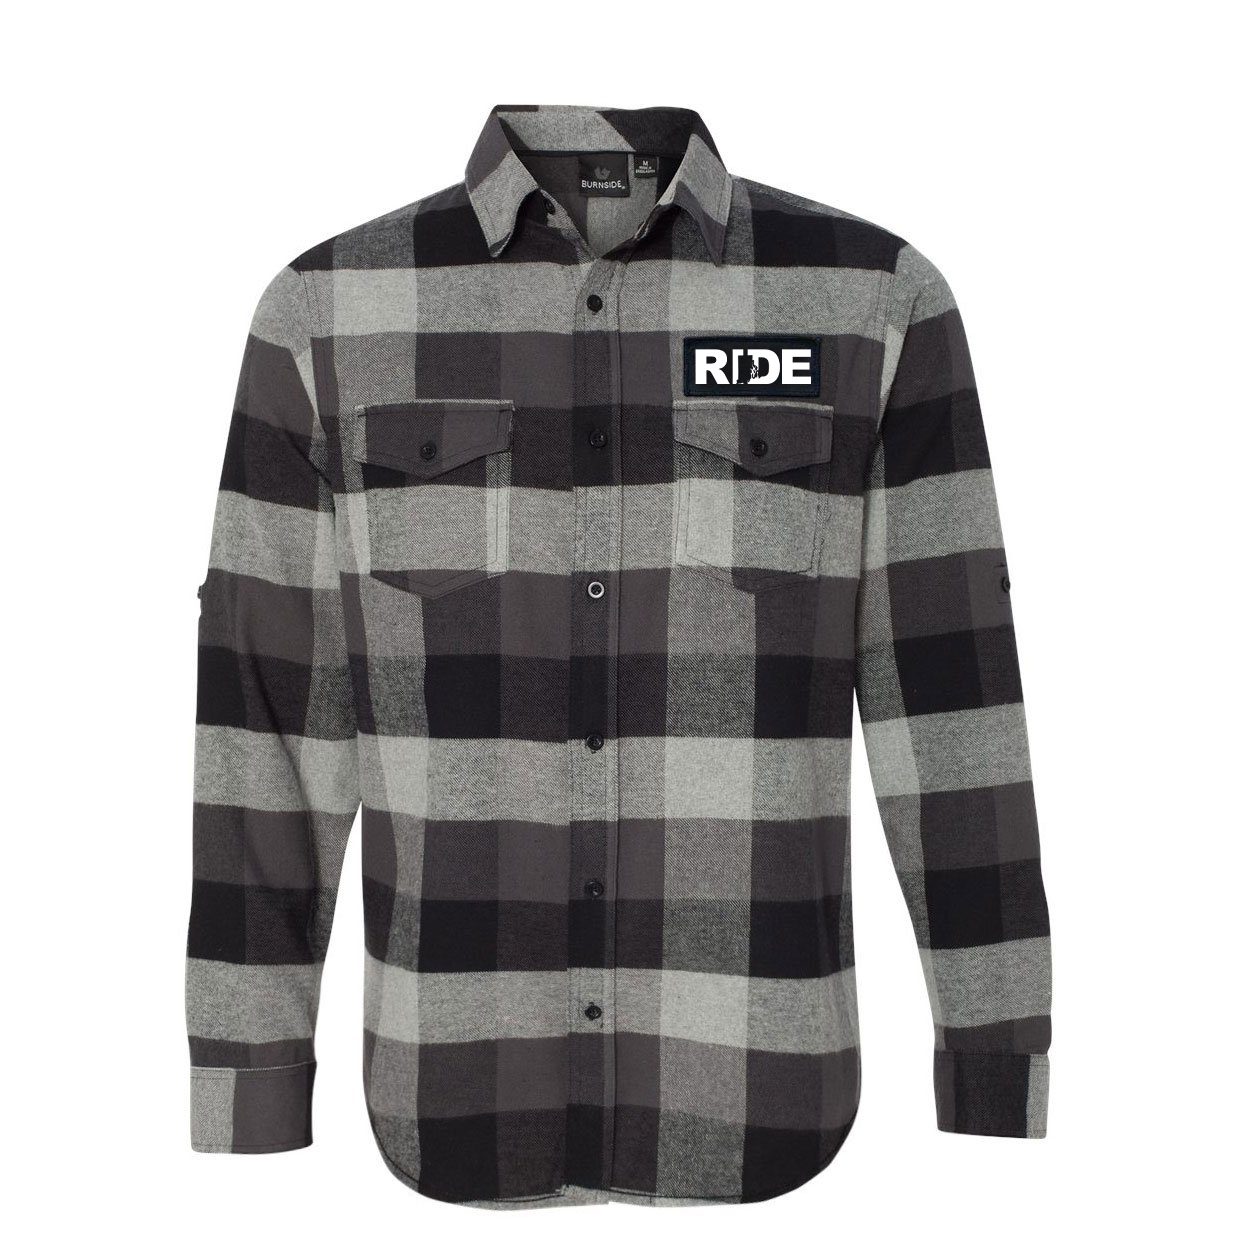 Ride Rhode Island Classic Unisex Long Sleeve Woven Patch Flannel Shirt Black/Gray (White Logo)